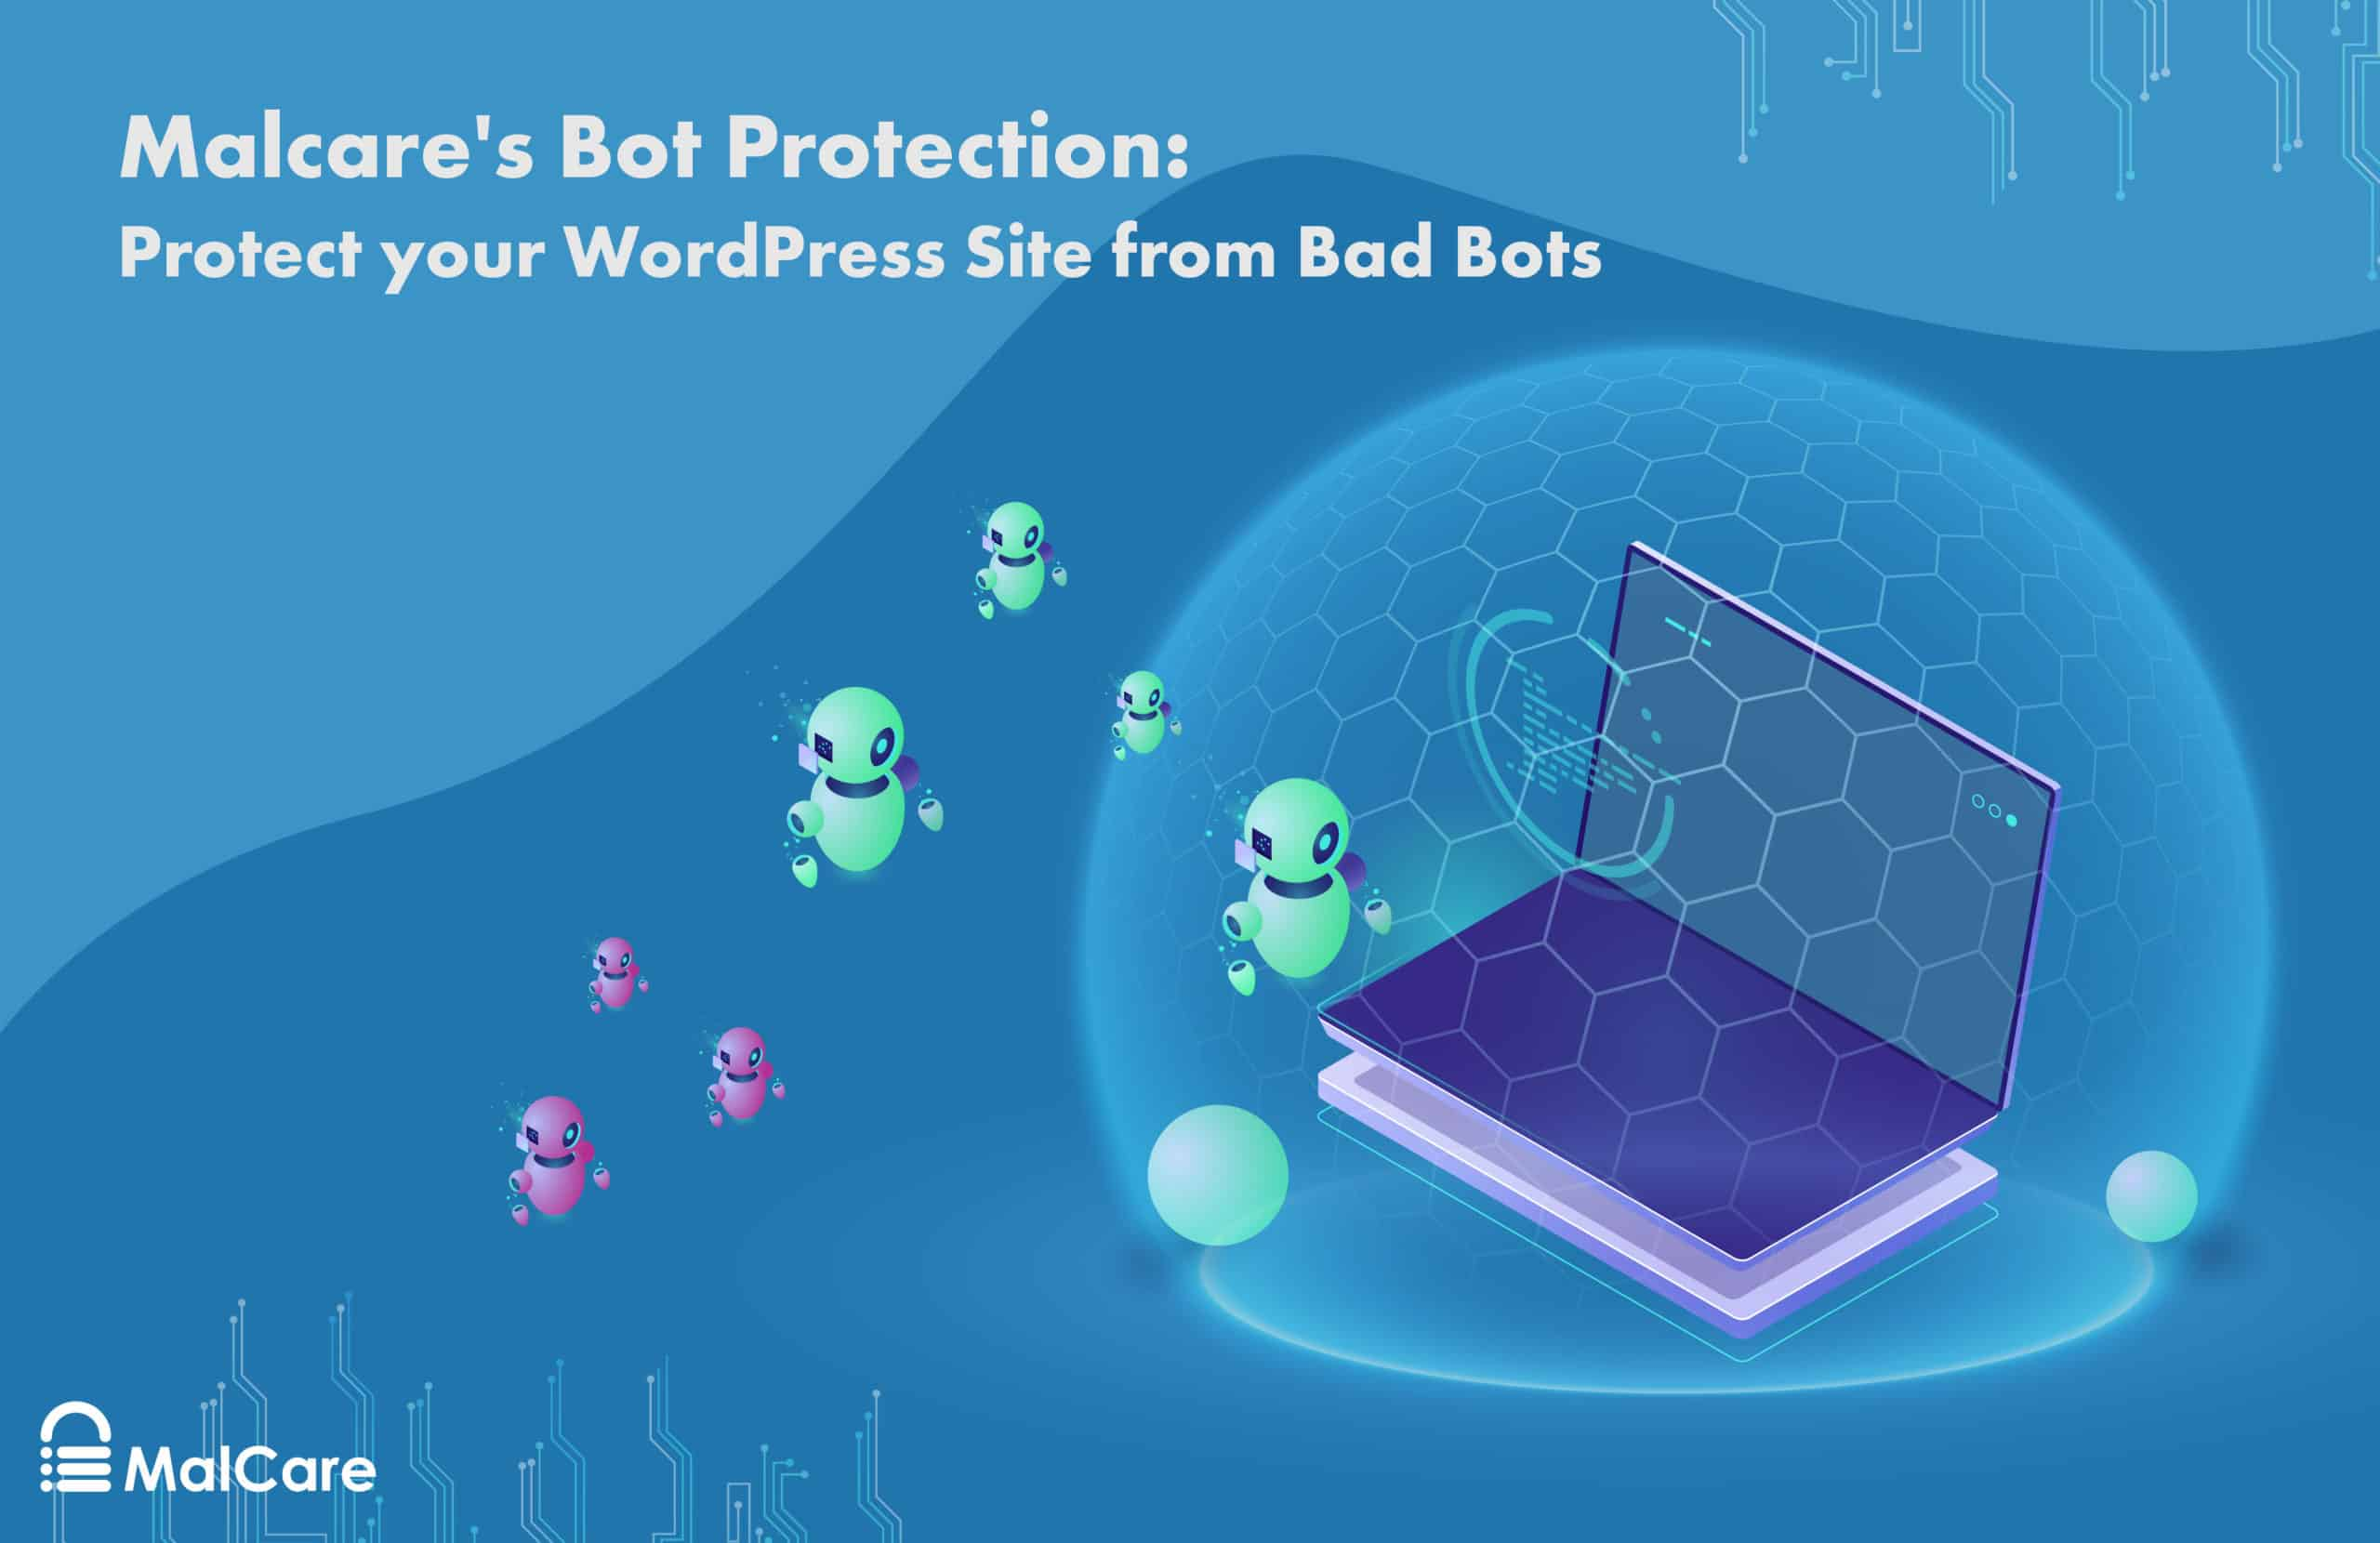 Malcare's bot protection